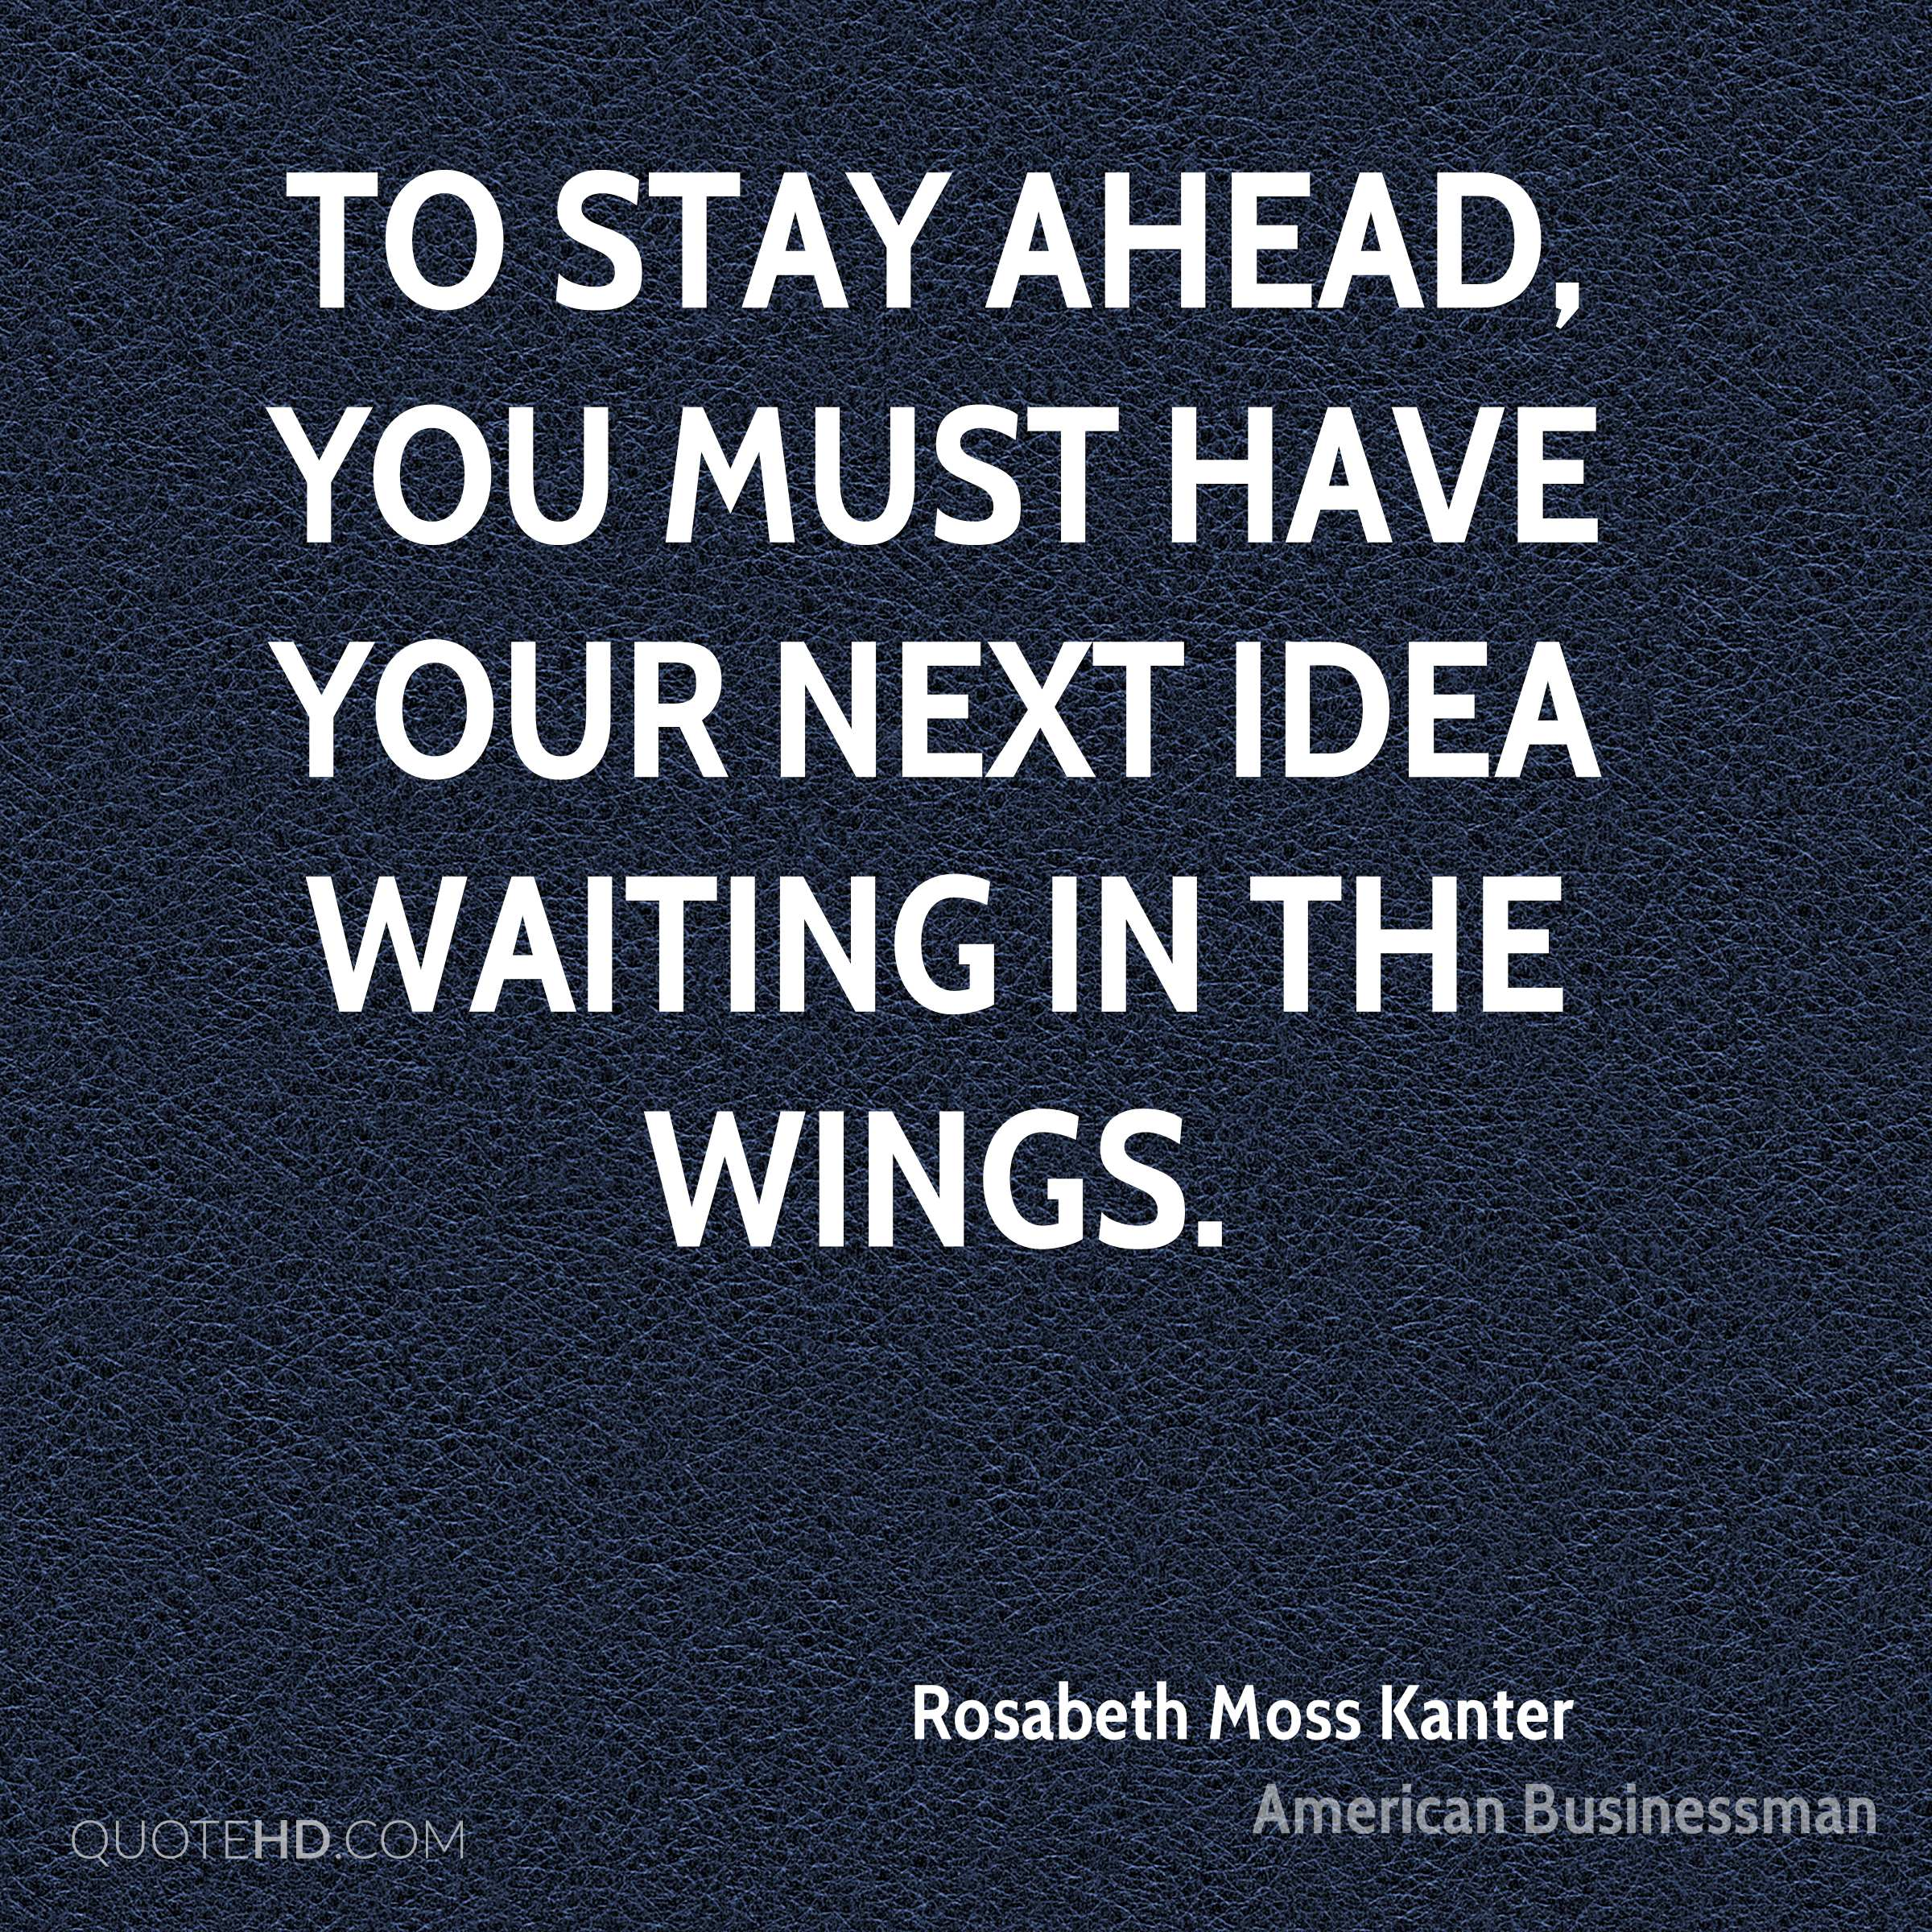 To stay ahead, you must have your next idea waiting in the wings.